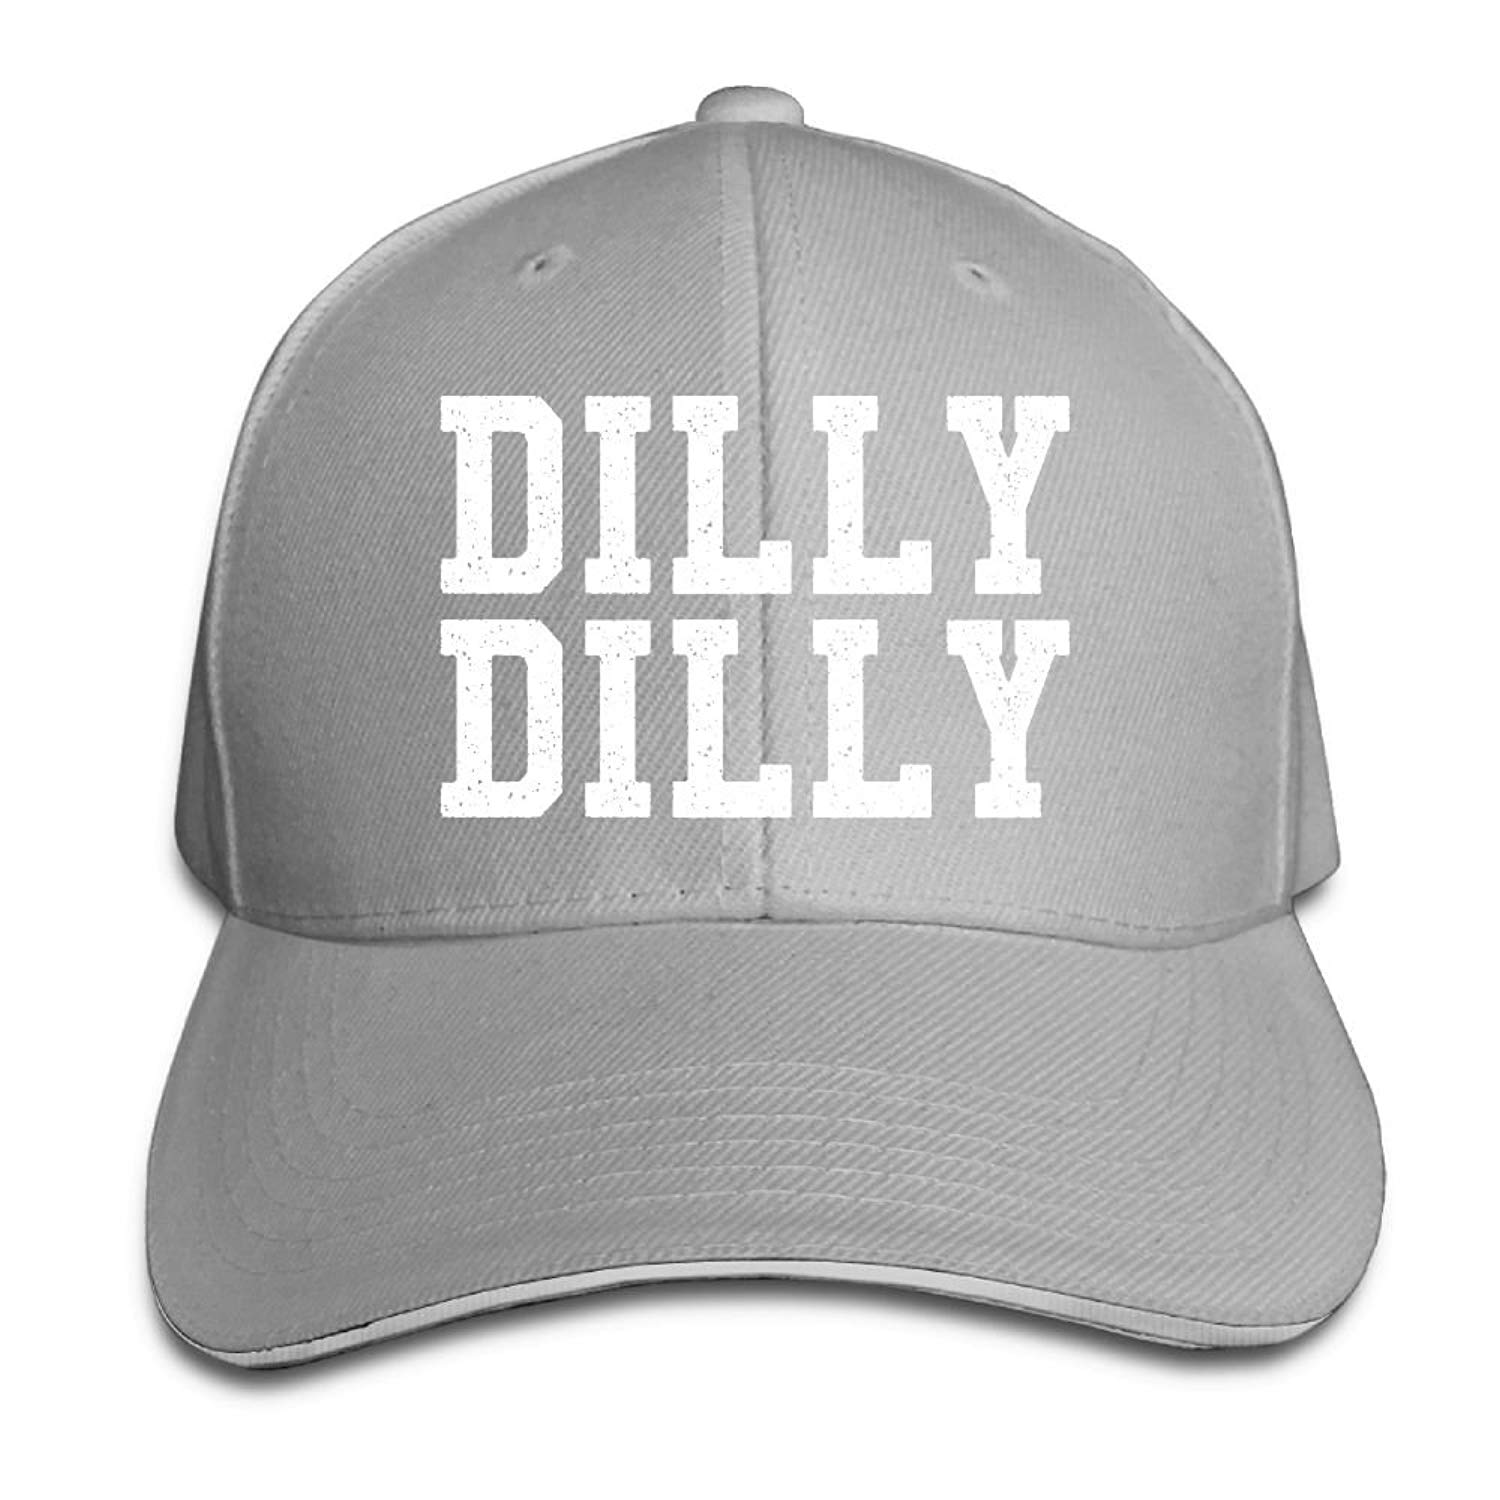 256c0209a1391 GENZHESI Dilly Dilly Adjustable Baseball Hat Dad Hats Trucker Hat Sandwich  Visor Cap